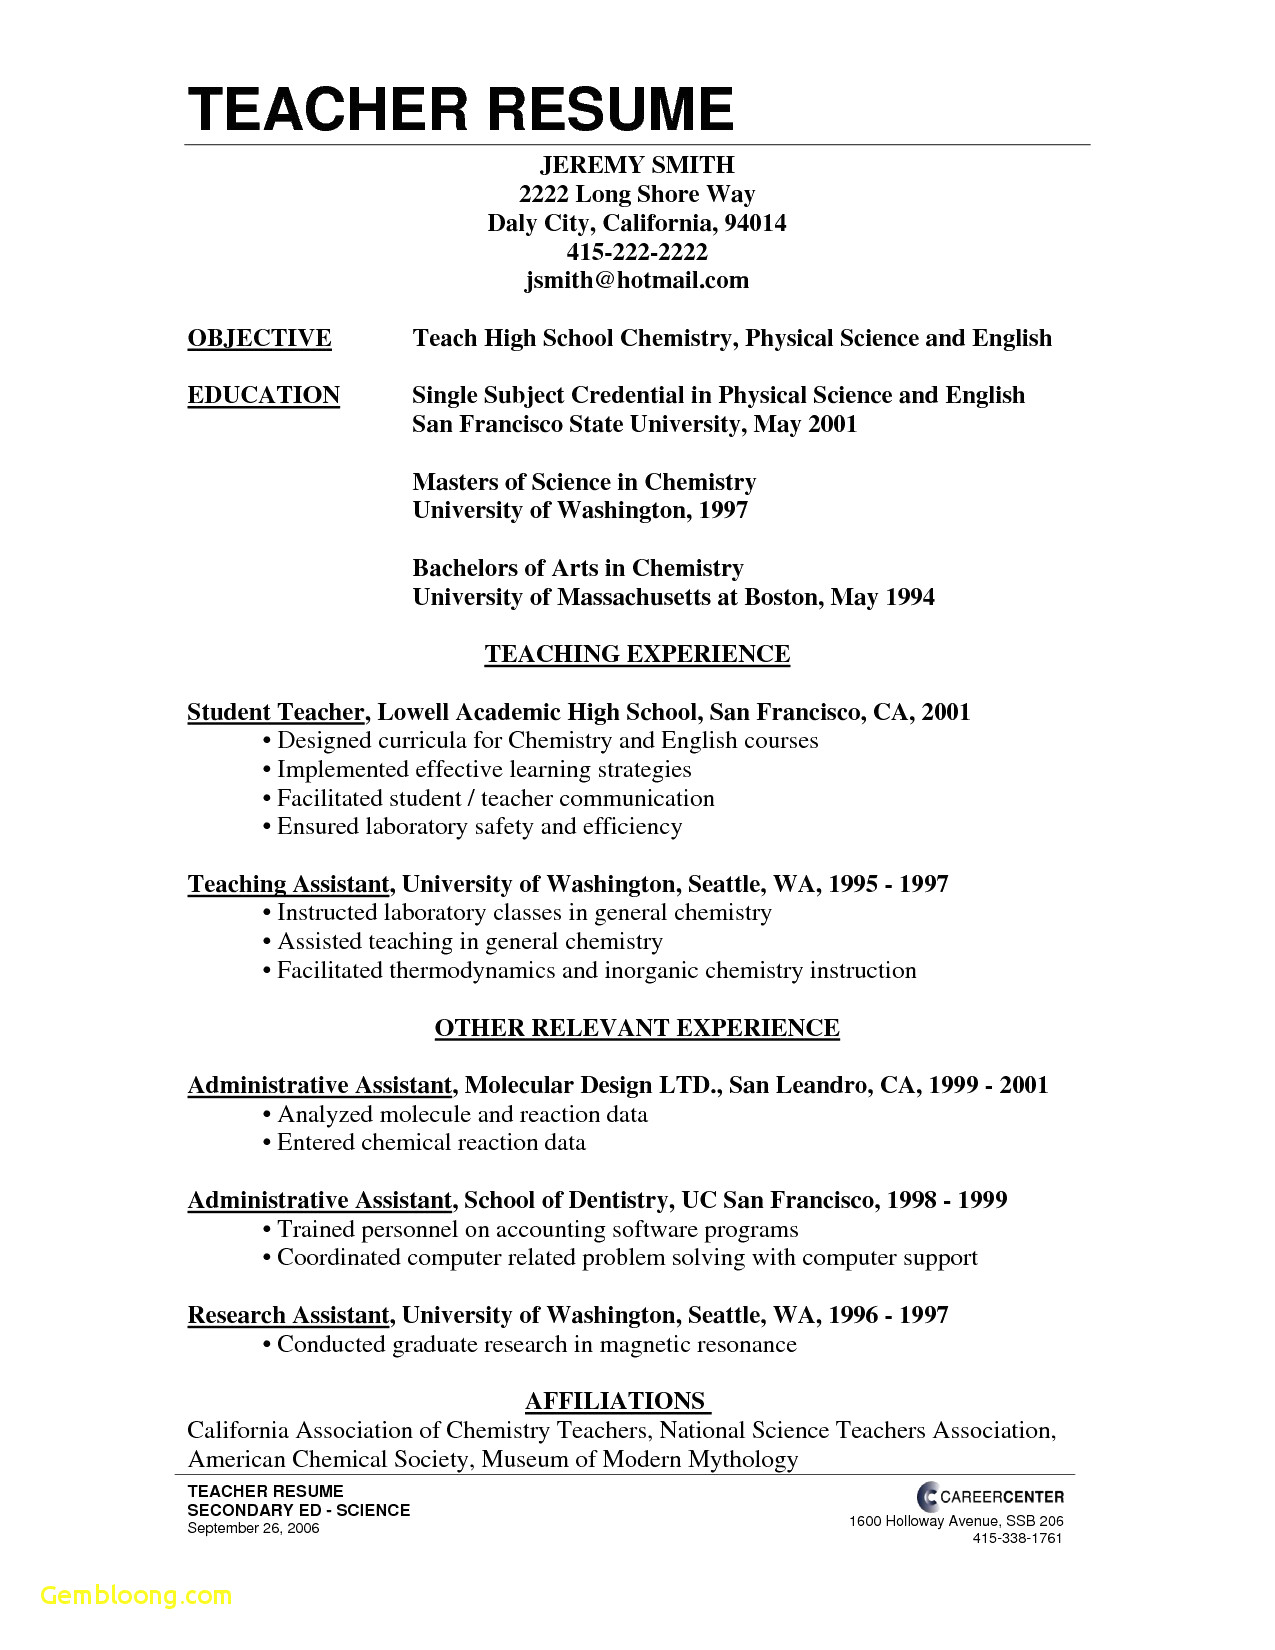 High School Student Resume Template Google Docs - 43 New Resume Template for Google Docs